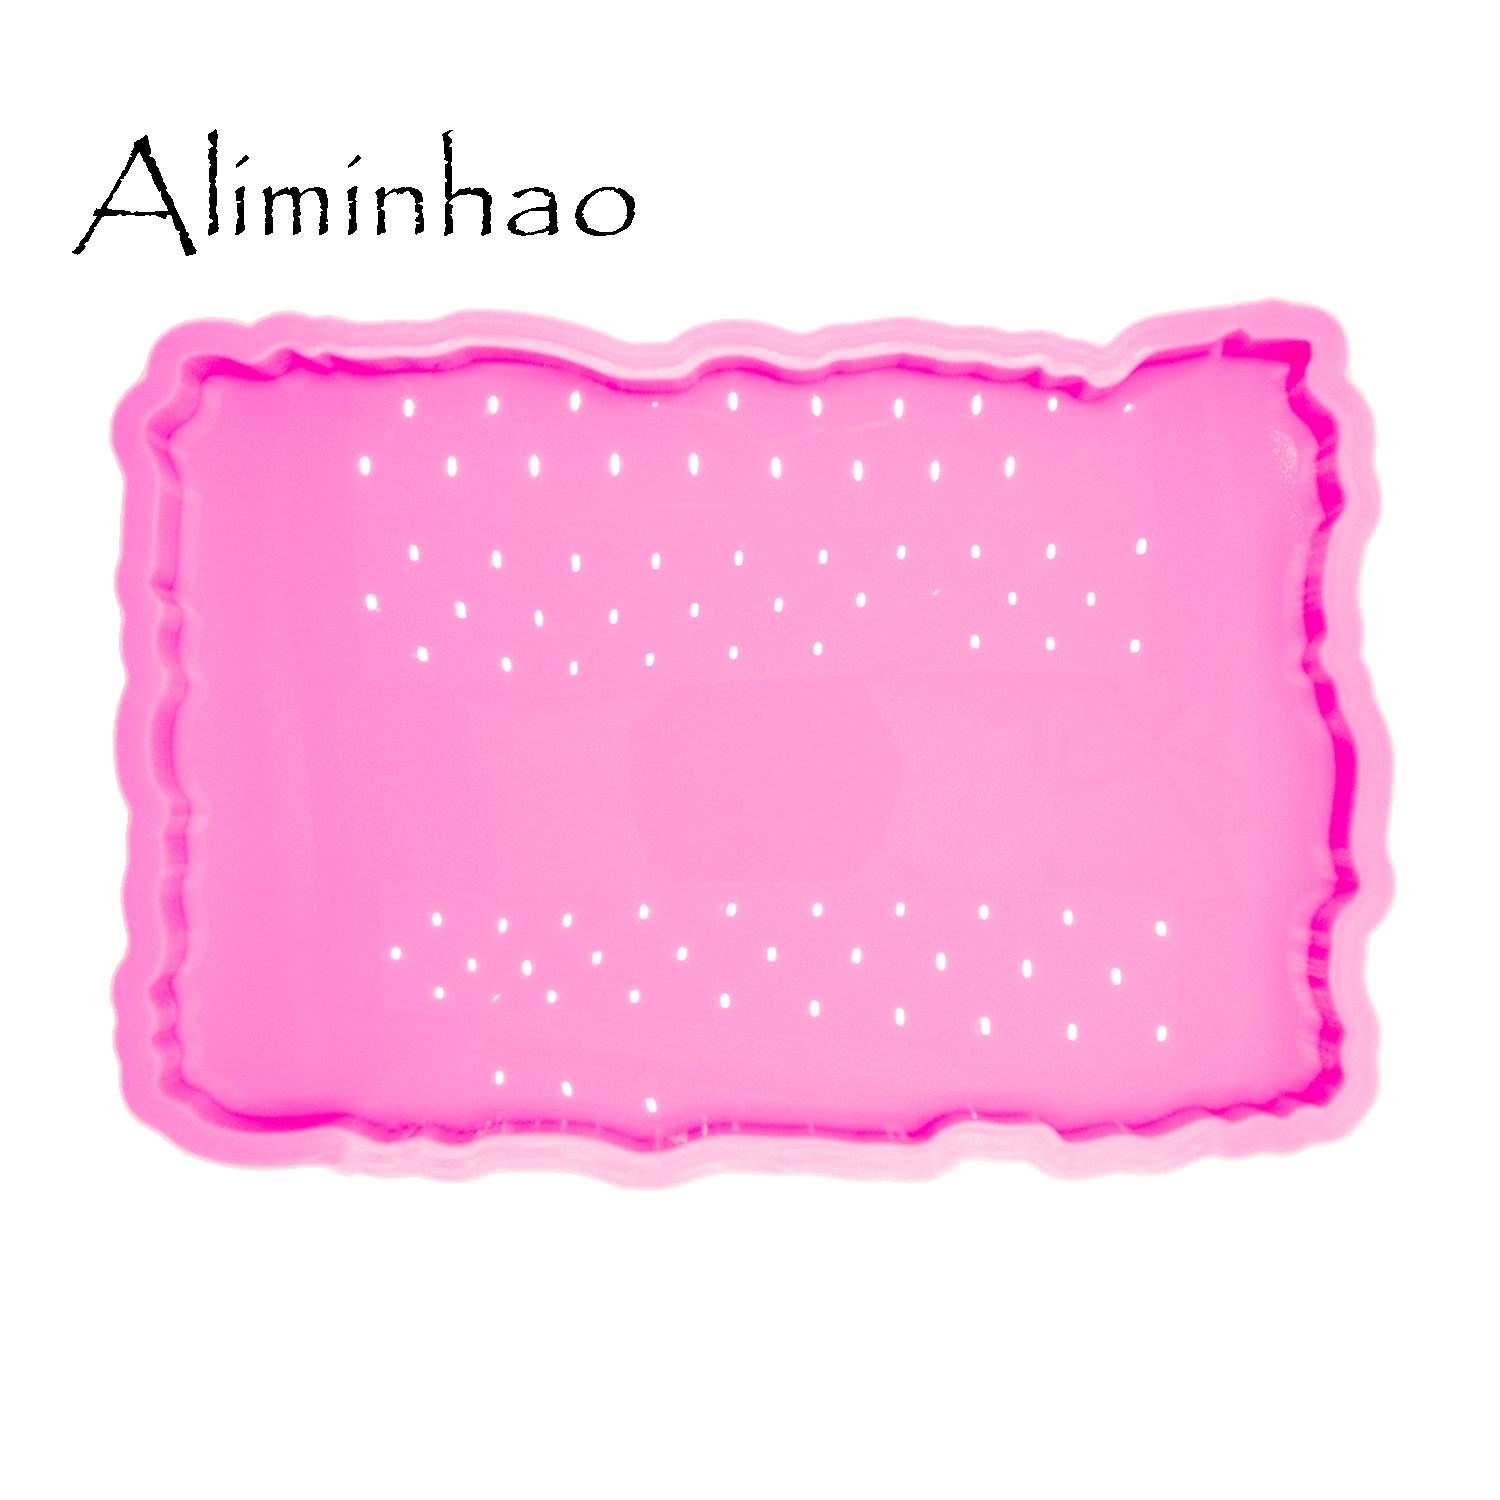 DY0469 Shiny High Quality 8*12.2inch Square Shape Silicone Molds Epoxy Resin DIY Geode Coasters Mould For Trays